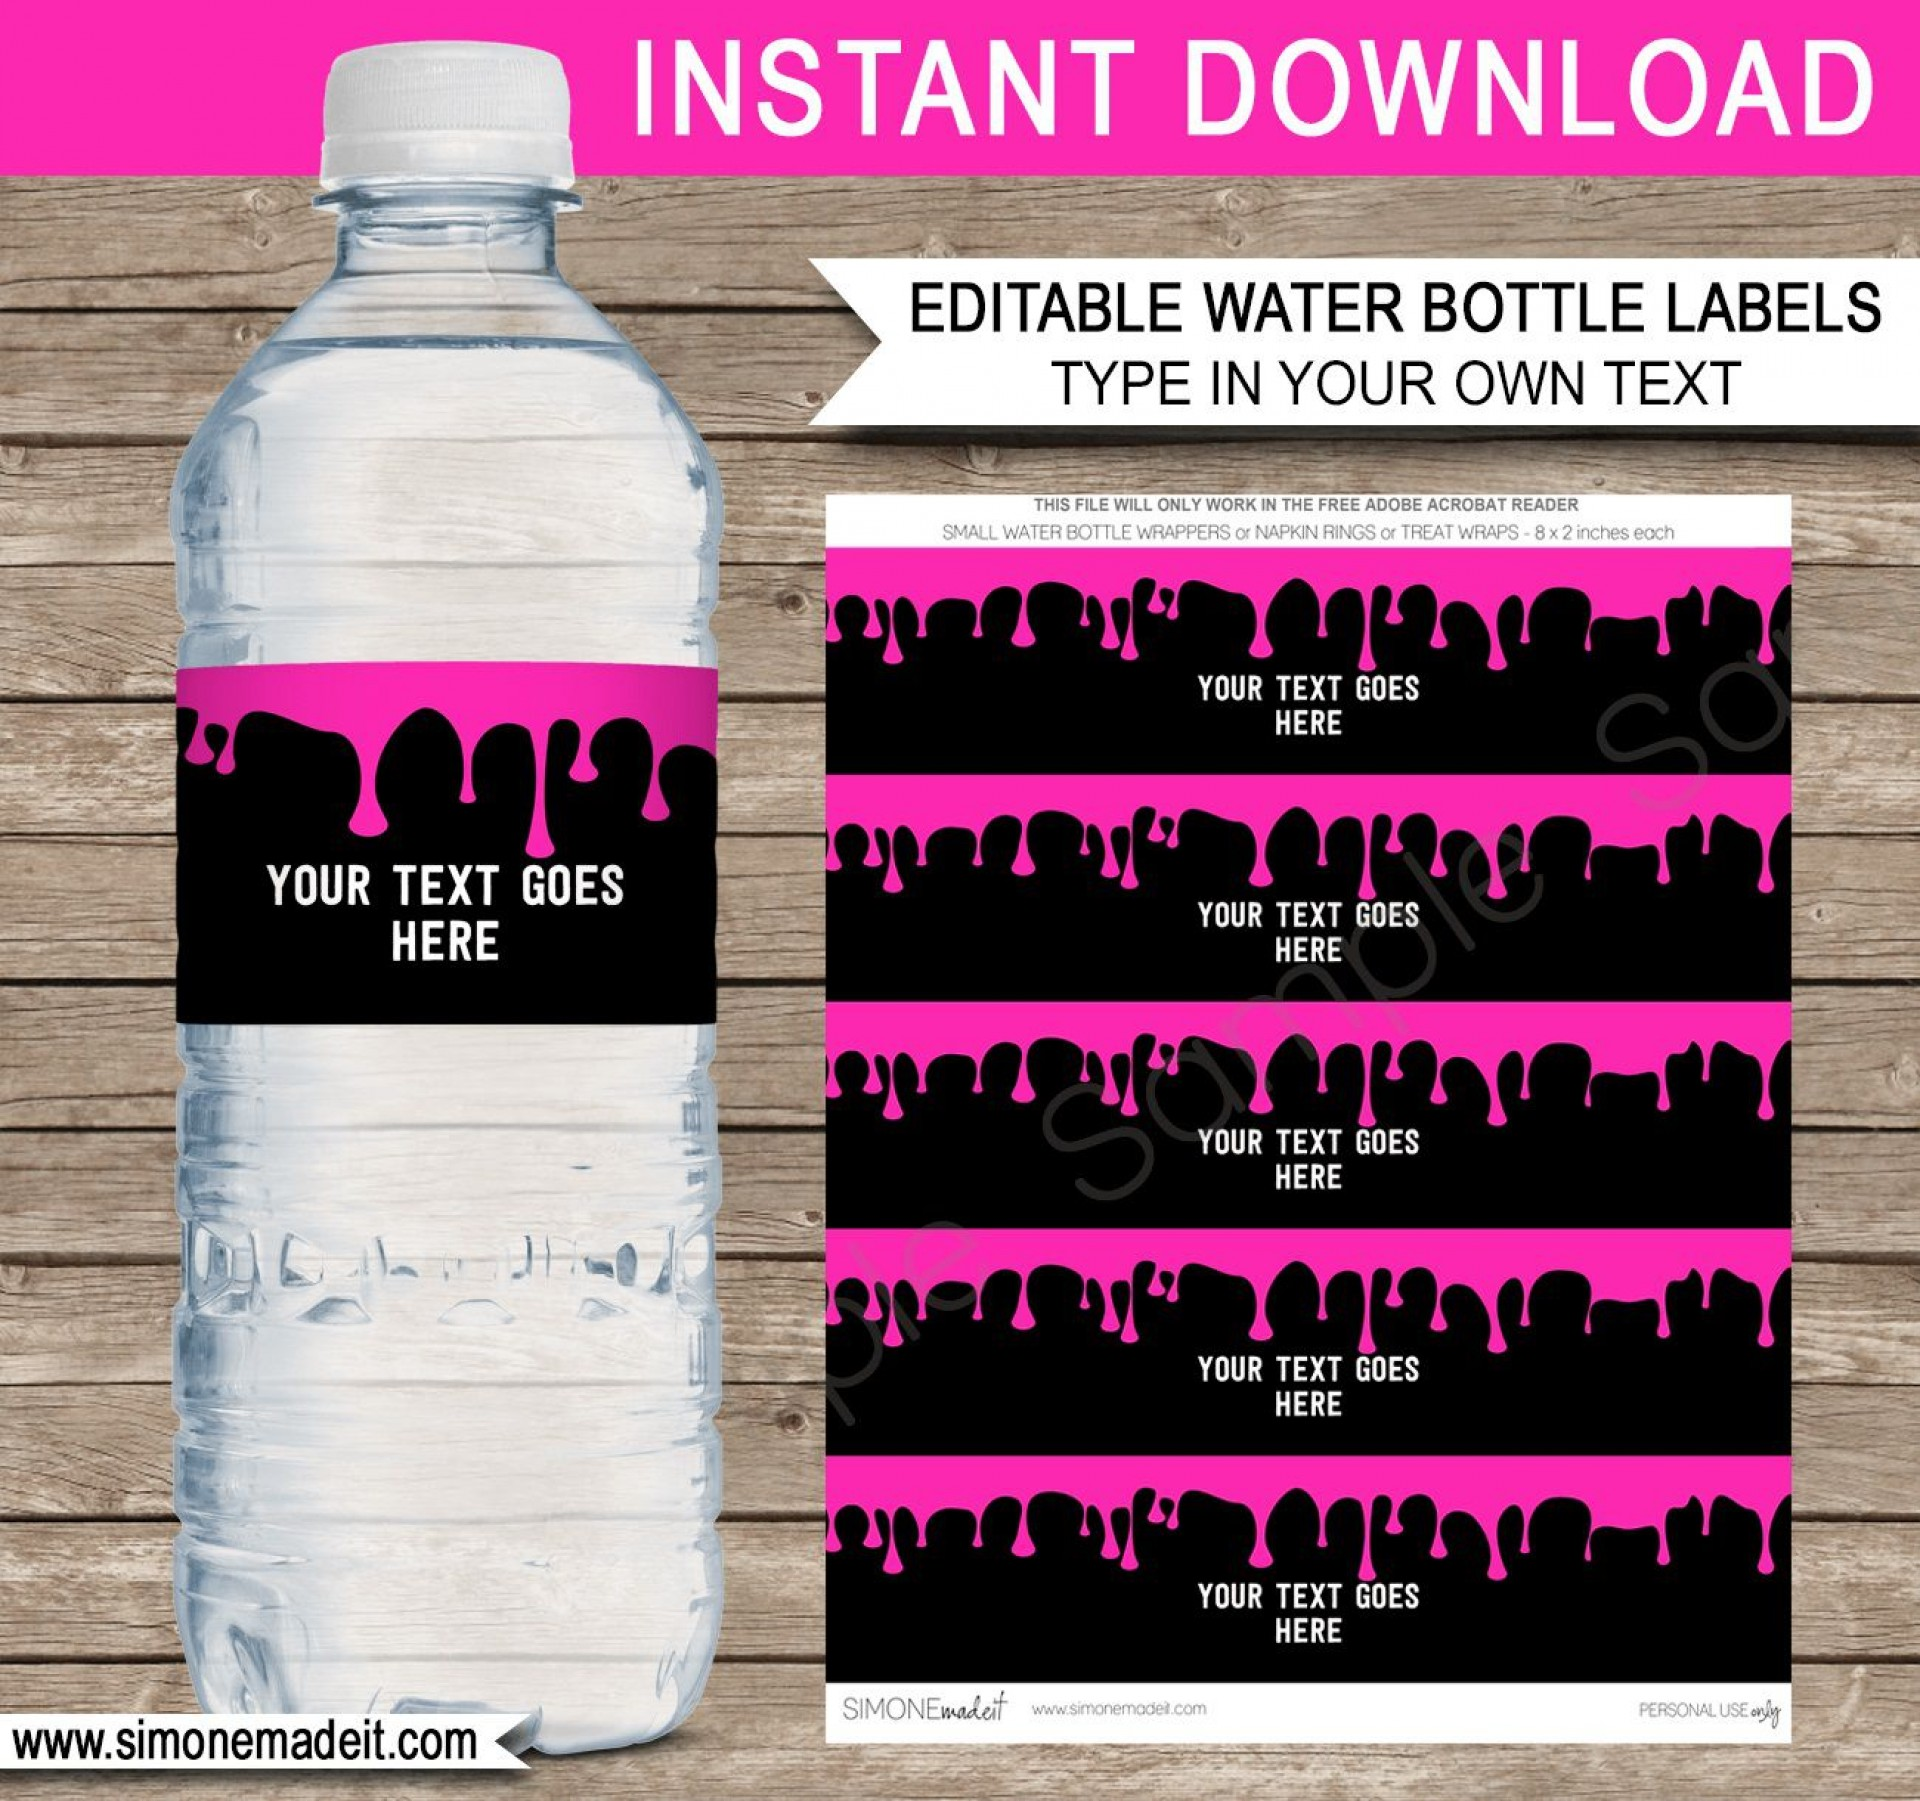 008 Remarkable Water Bottle Label Template Image  Free Photoshop Baby Shower Psd1920